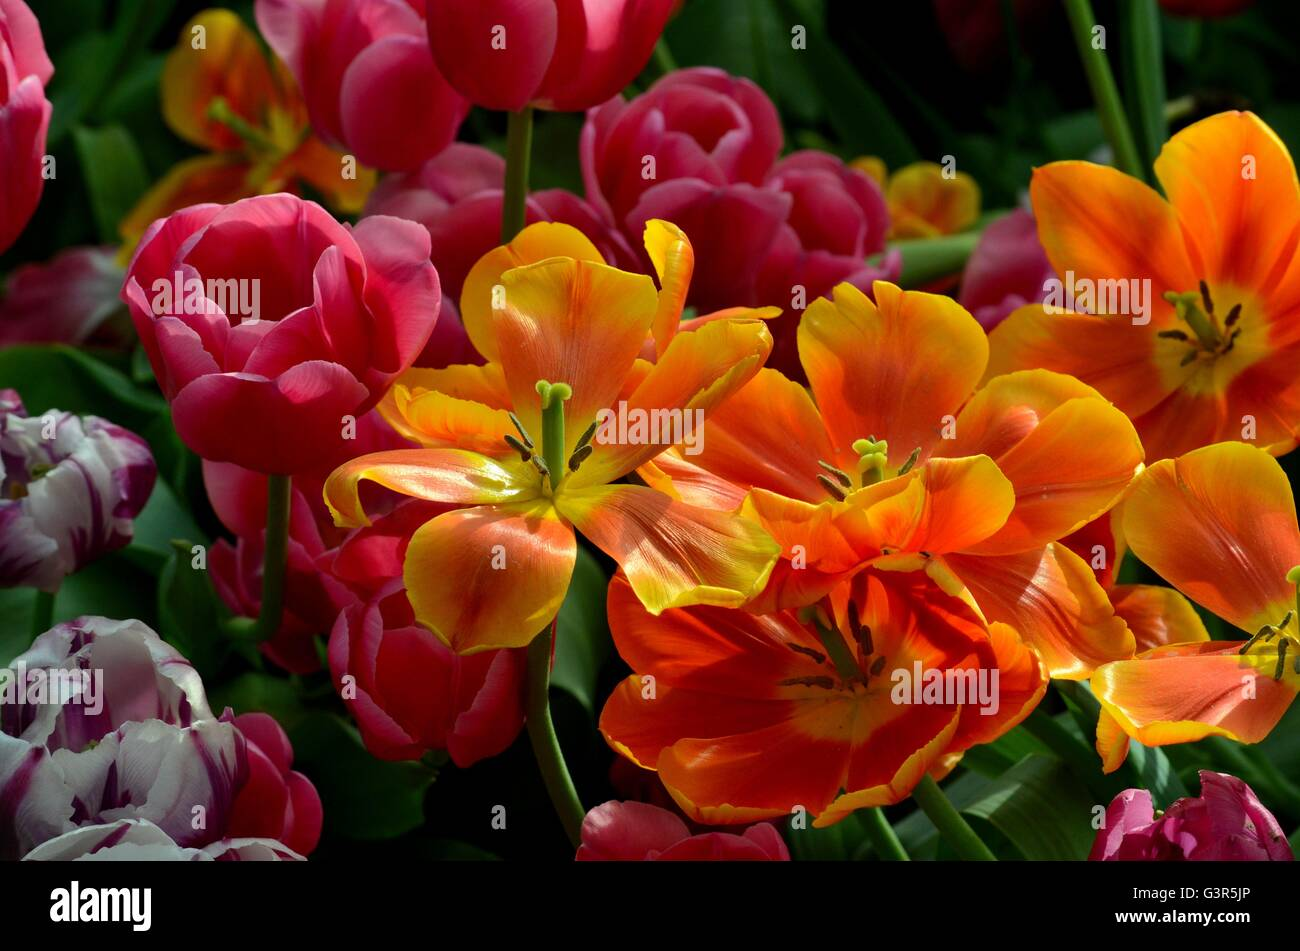 Orange and red tulip lilies in various stages of bloom - Stock Image